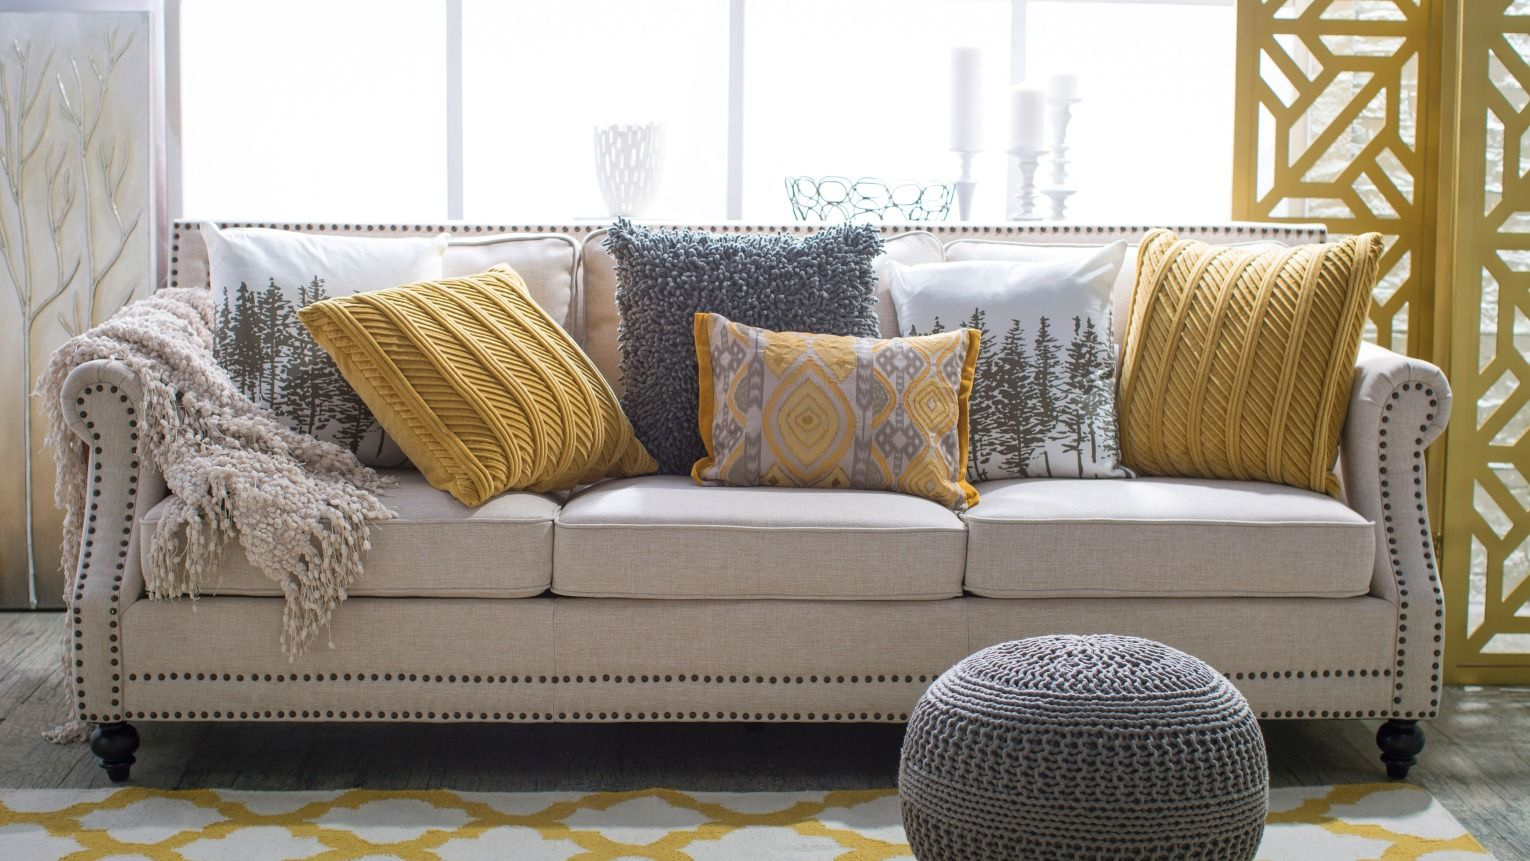 5 Ways To Decorate A Neutral Sofa With Throw Pillows Decorative